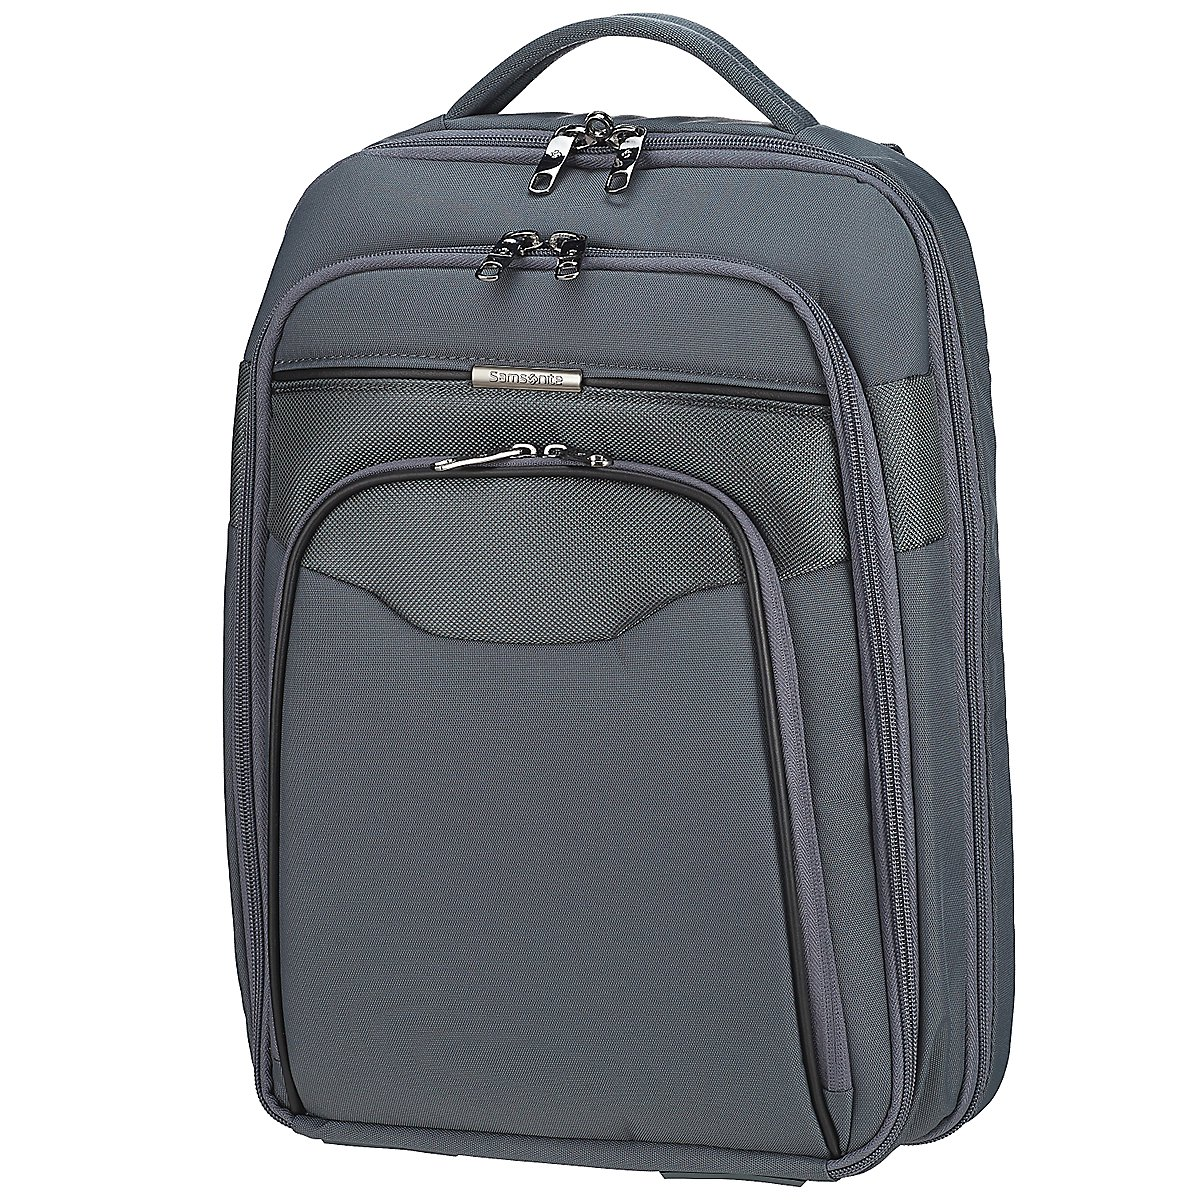 samsonite desklite rucksack mit laptopfach 43 cm koffer. Black Bedroom Furniture Sets. Home Design Ideas